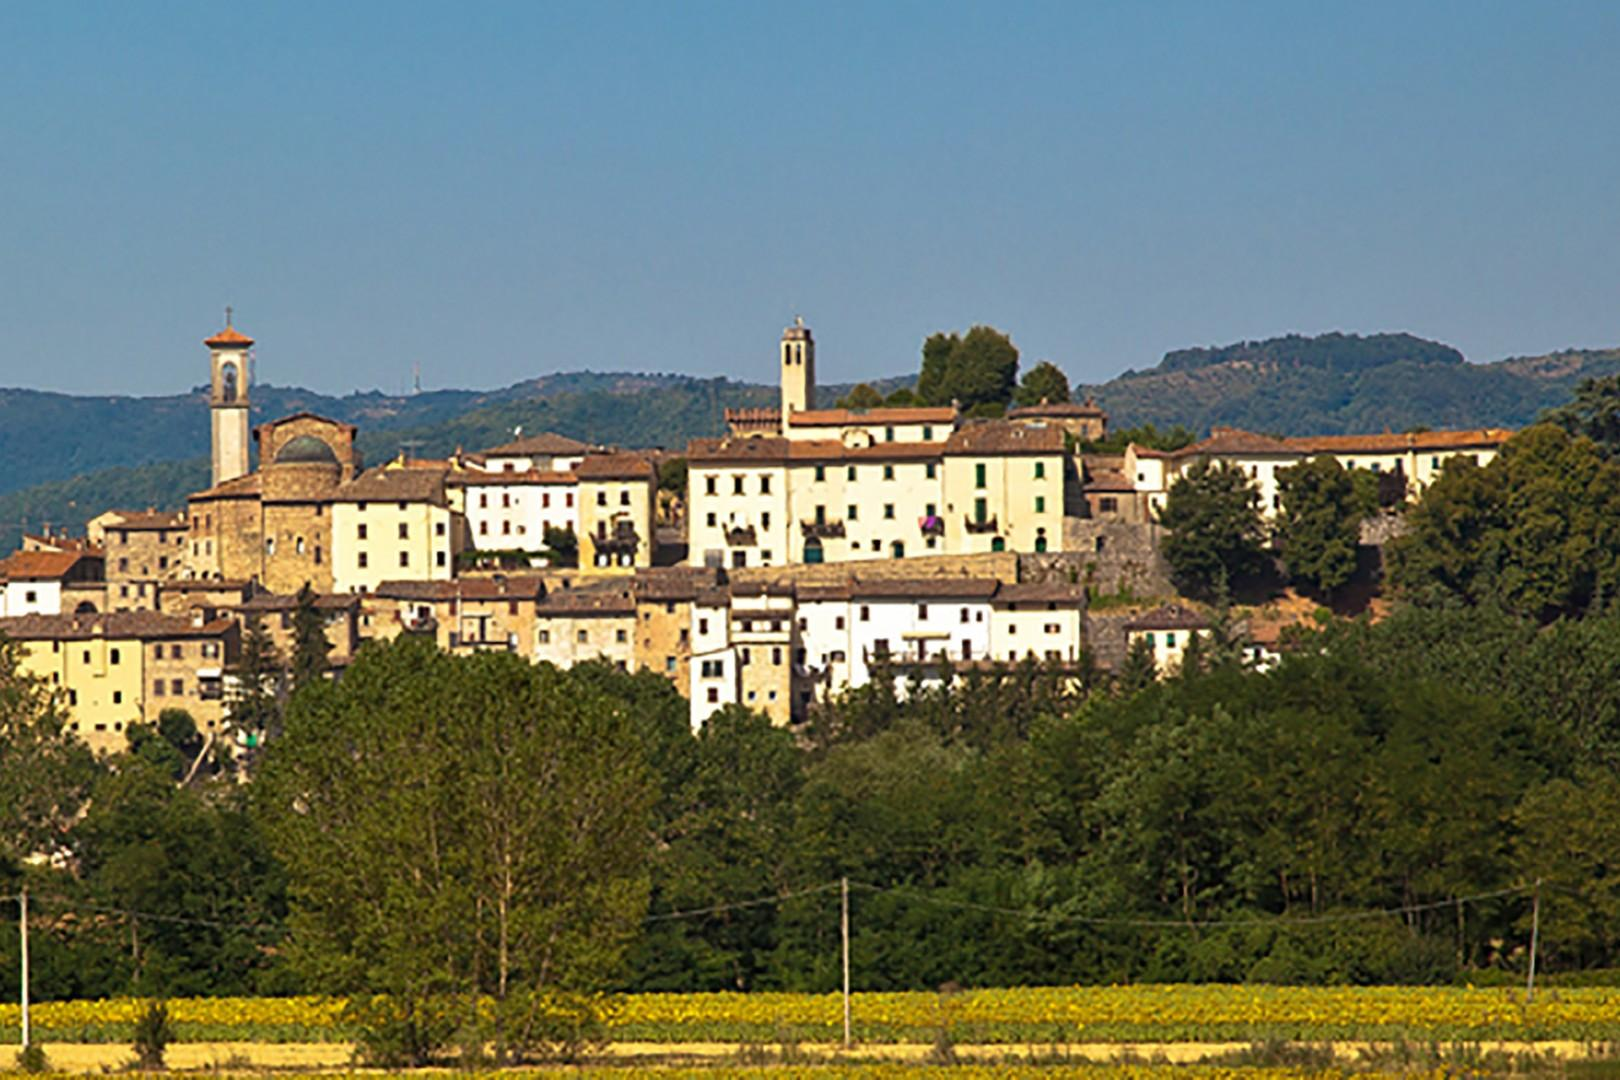 The village of Monterchi is just 2 miles away, with shops, grocery store and restaurants.